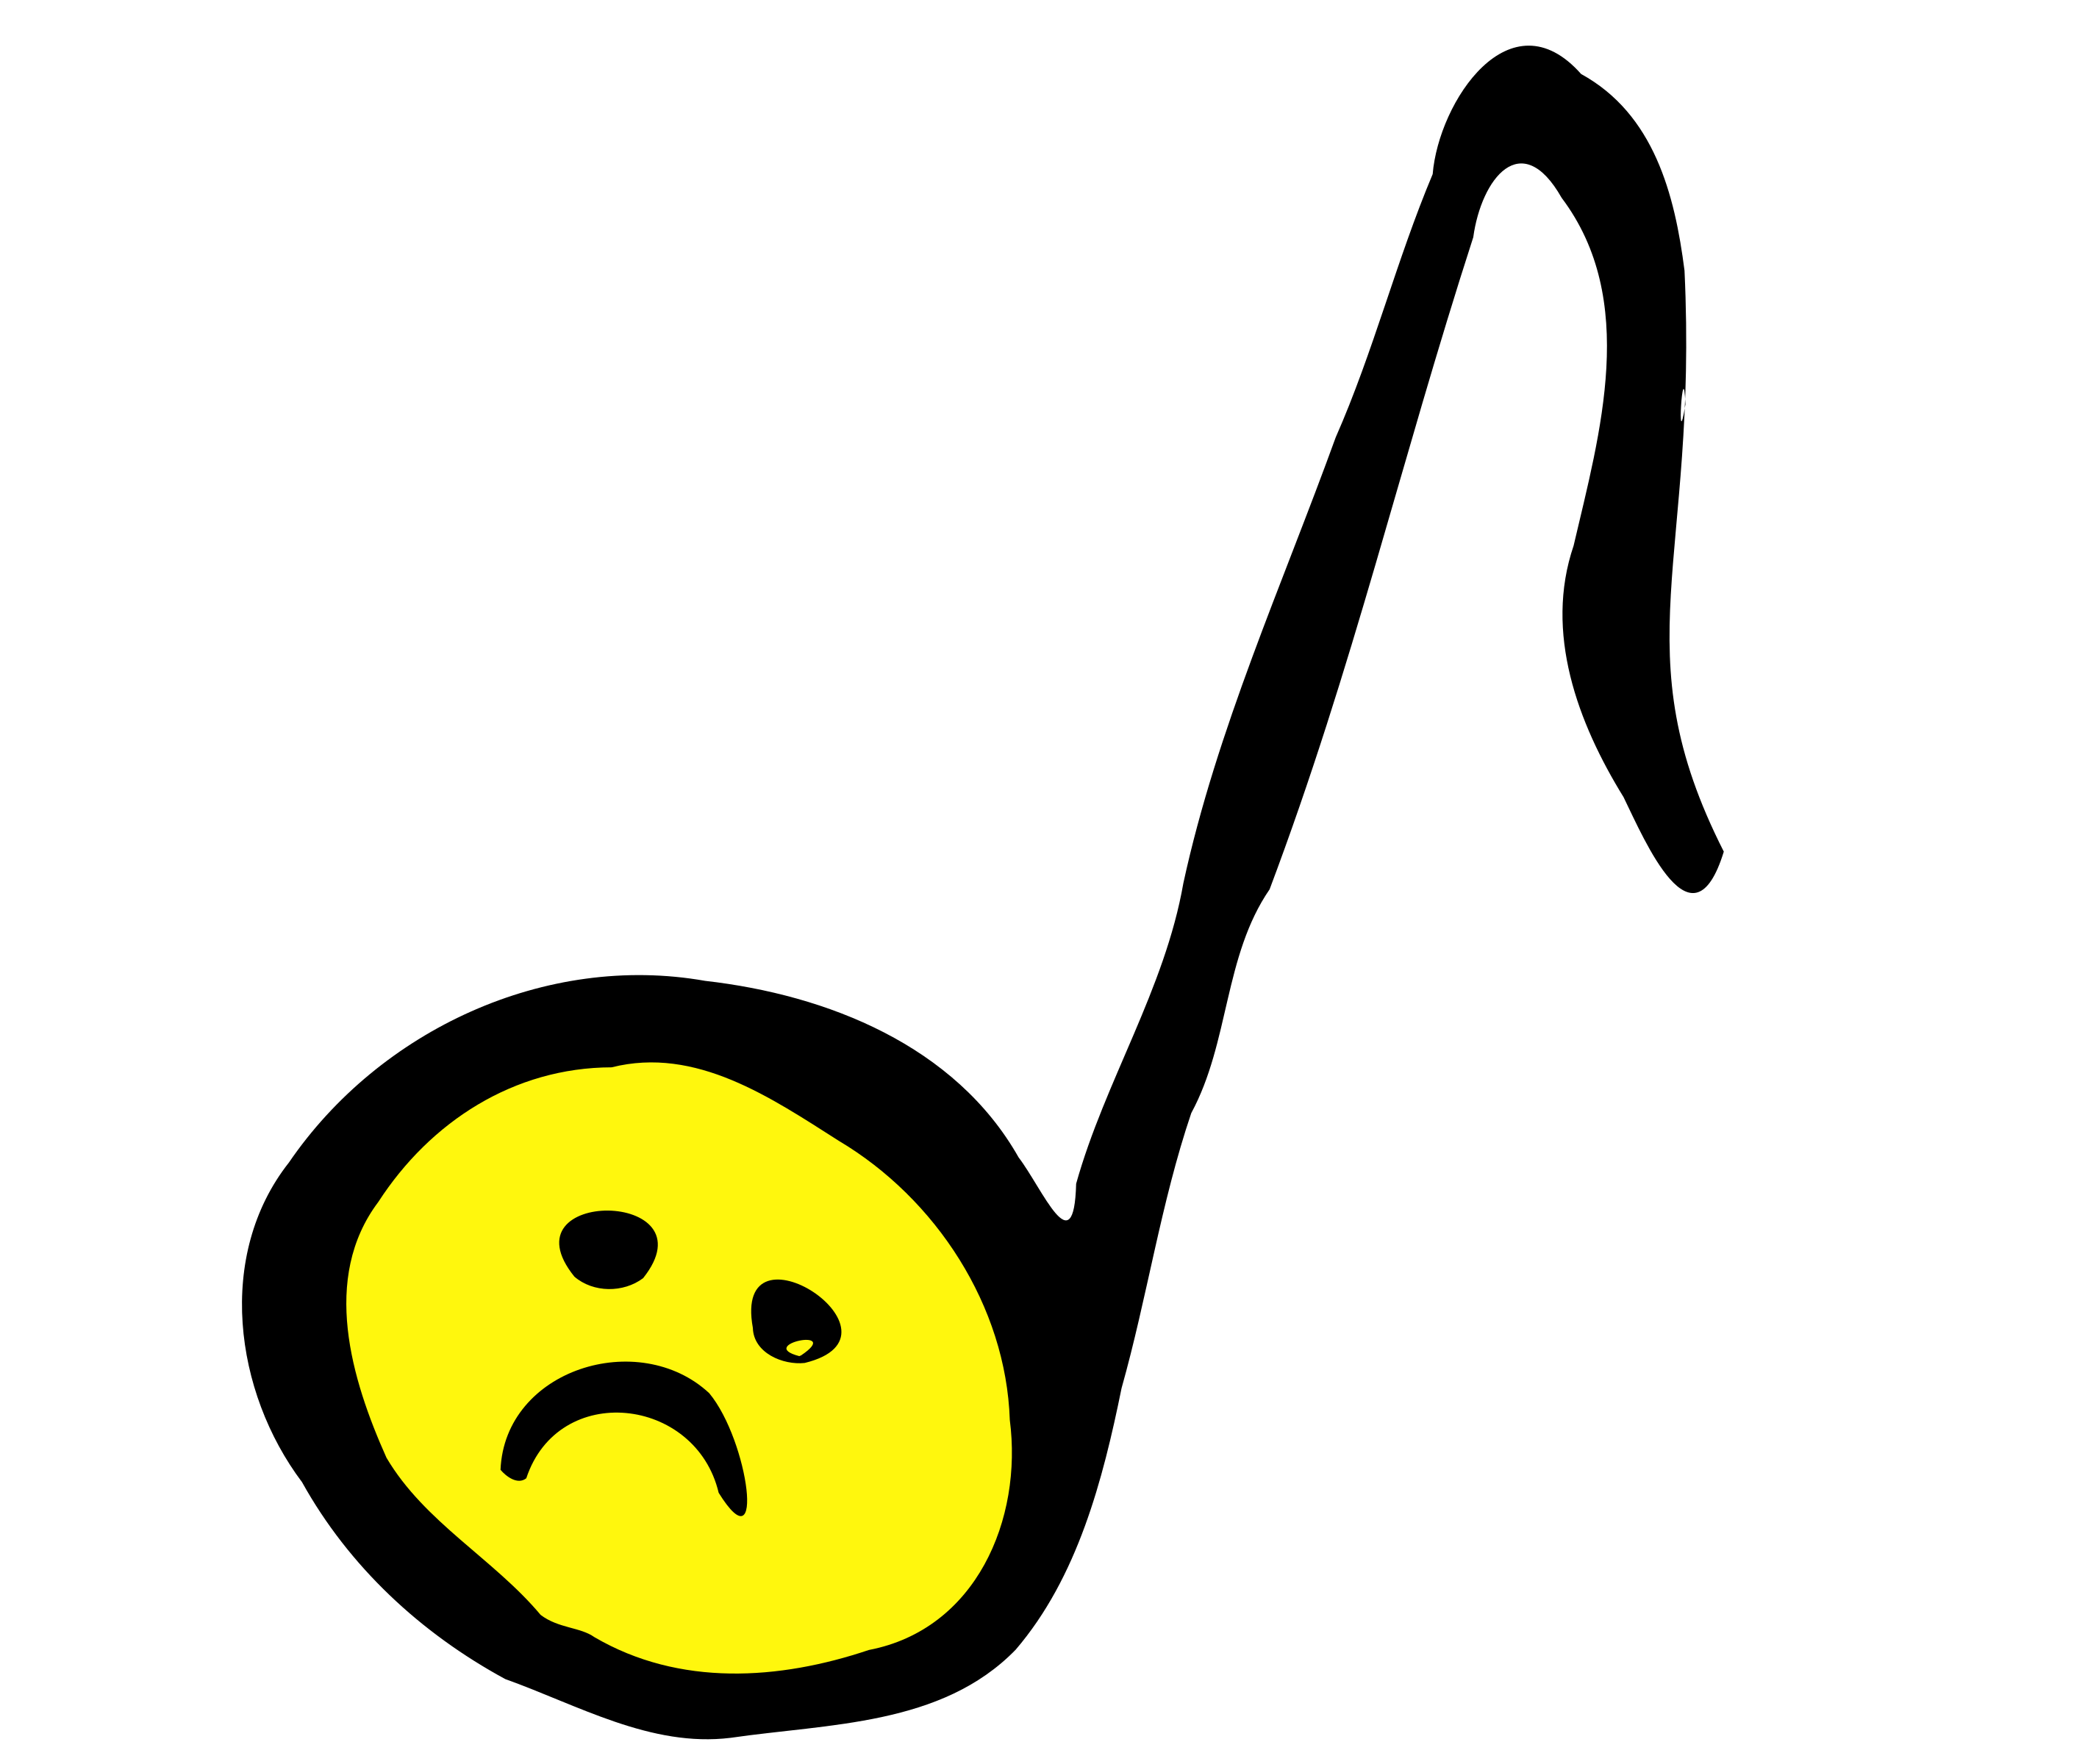 Clipart - Unhappy Eighth Note